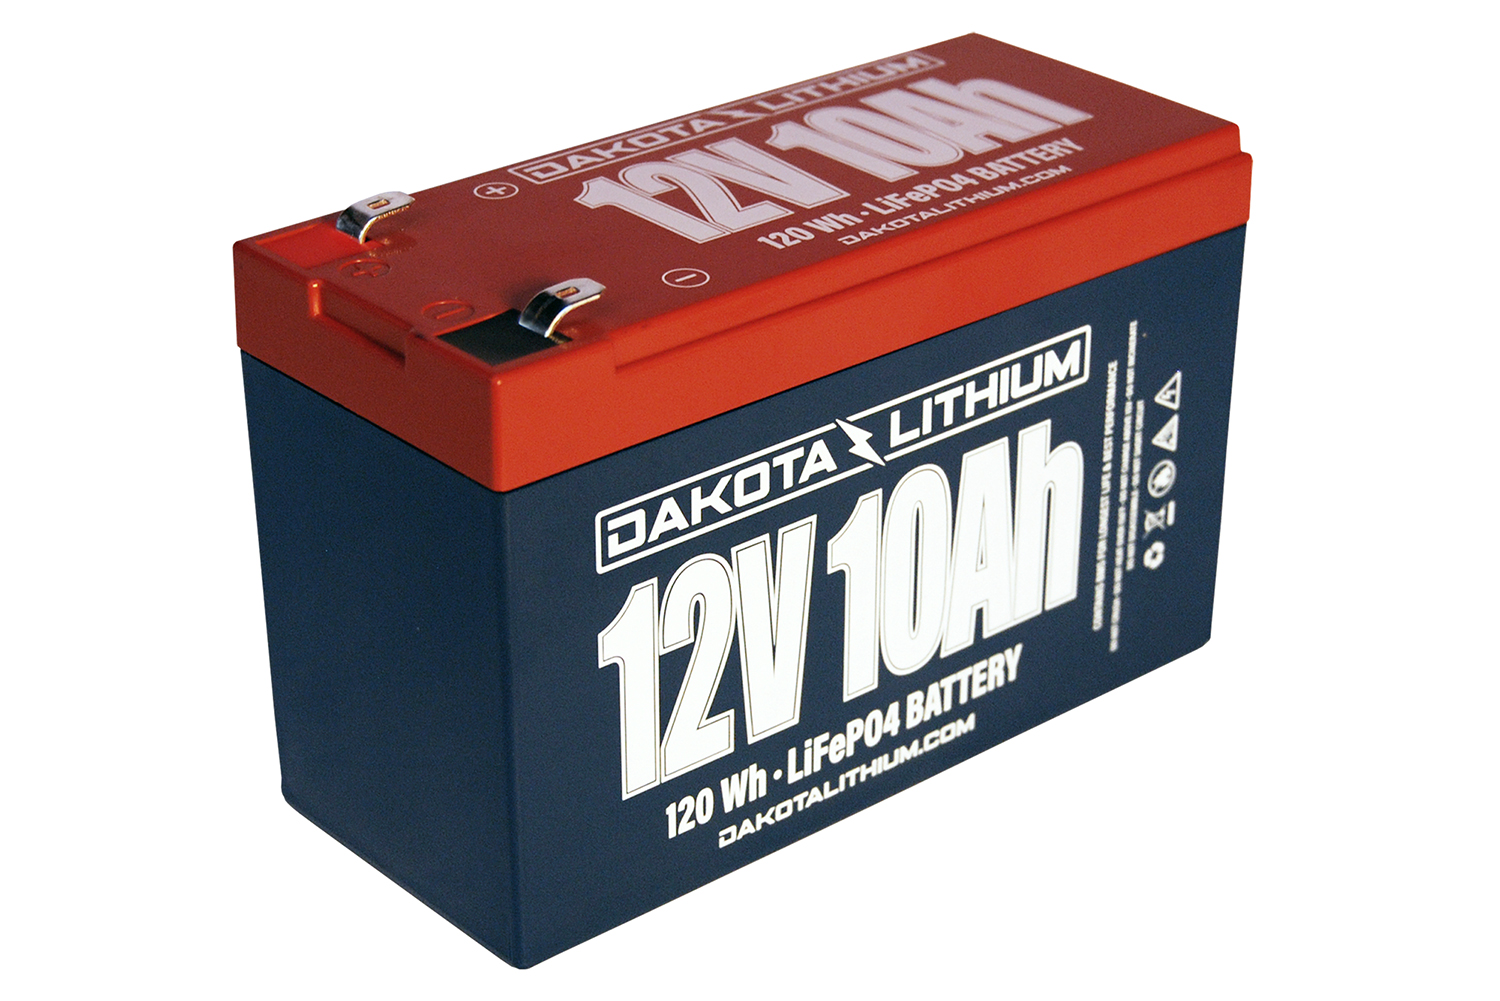 Check out the Dakota Lithium 12v-10Ah battery